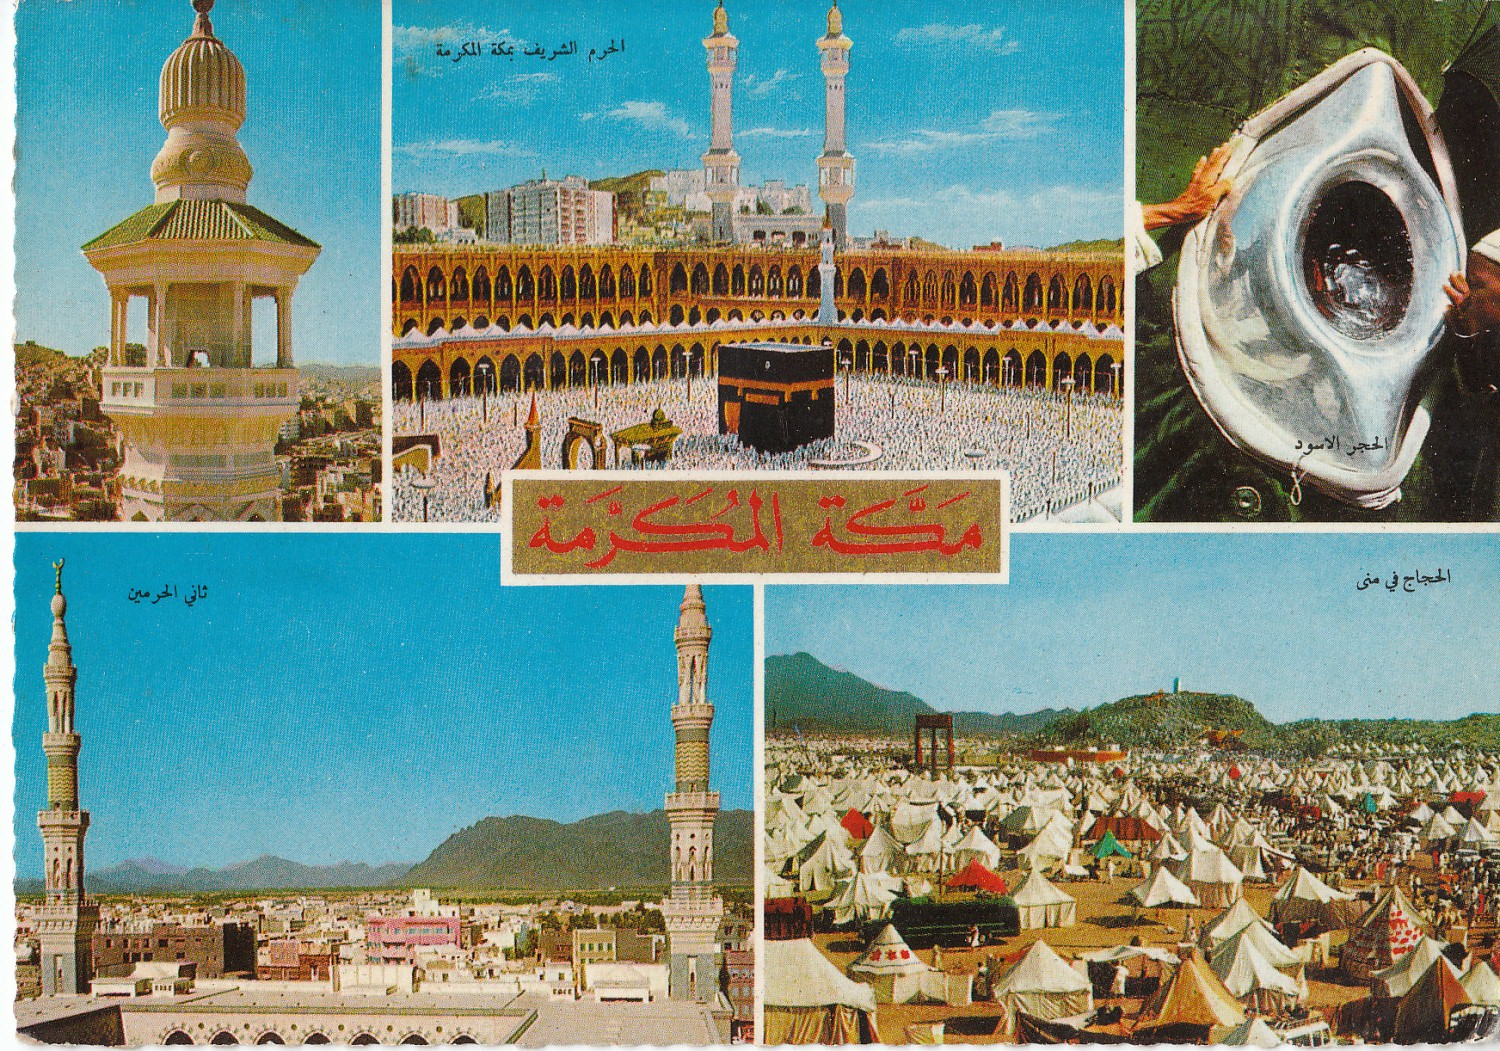 1973-01-04 Mecca and the nearby tent city of Mina (stayed there 2 weeks +)